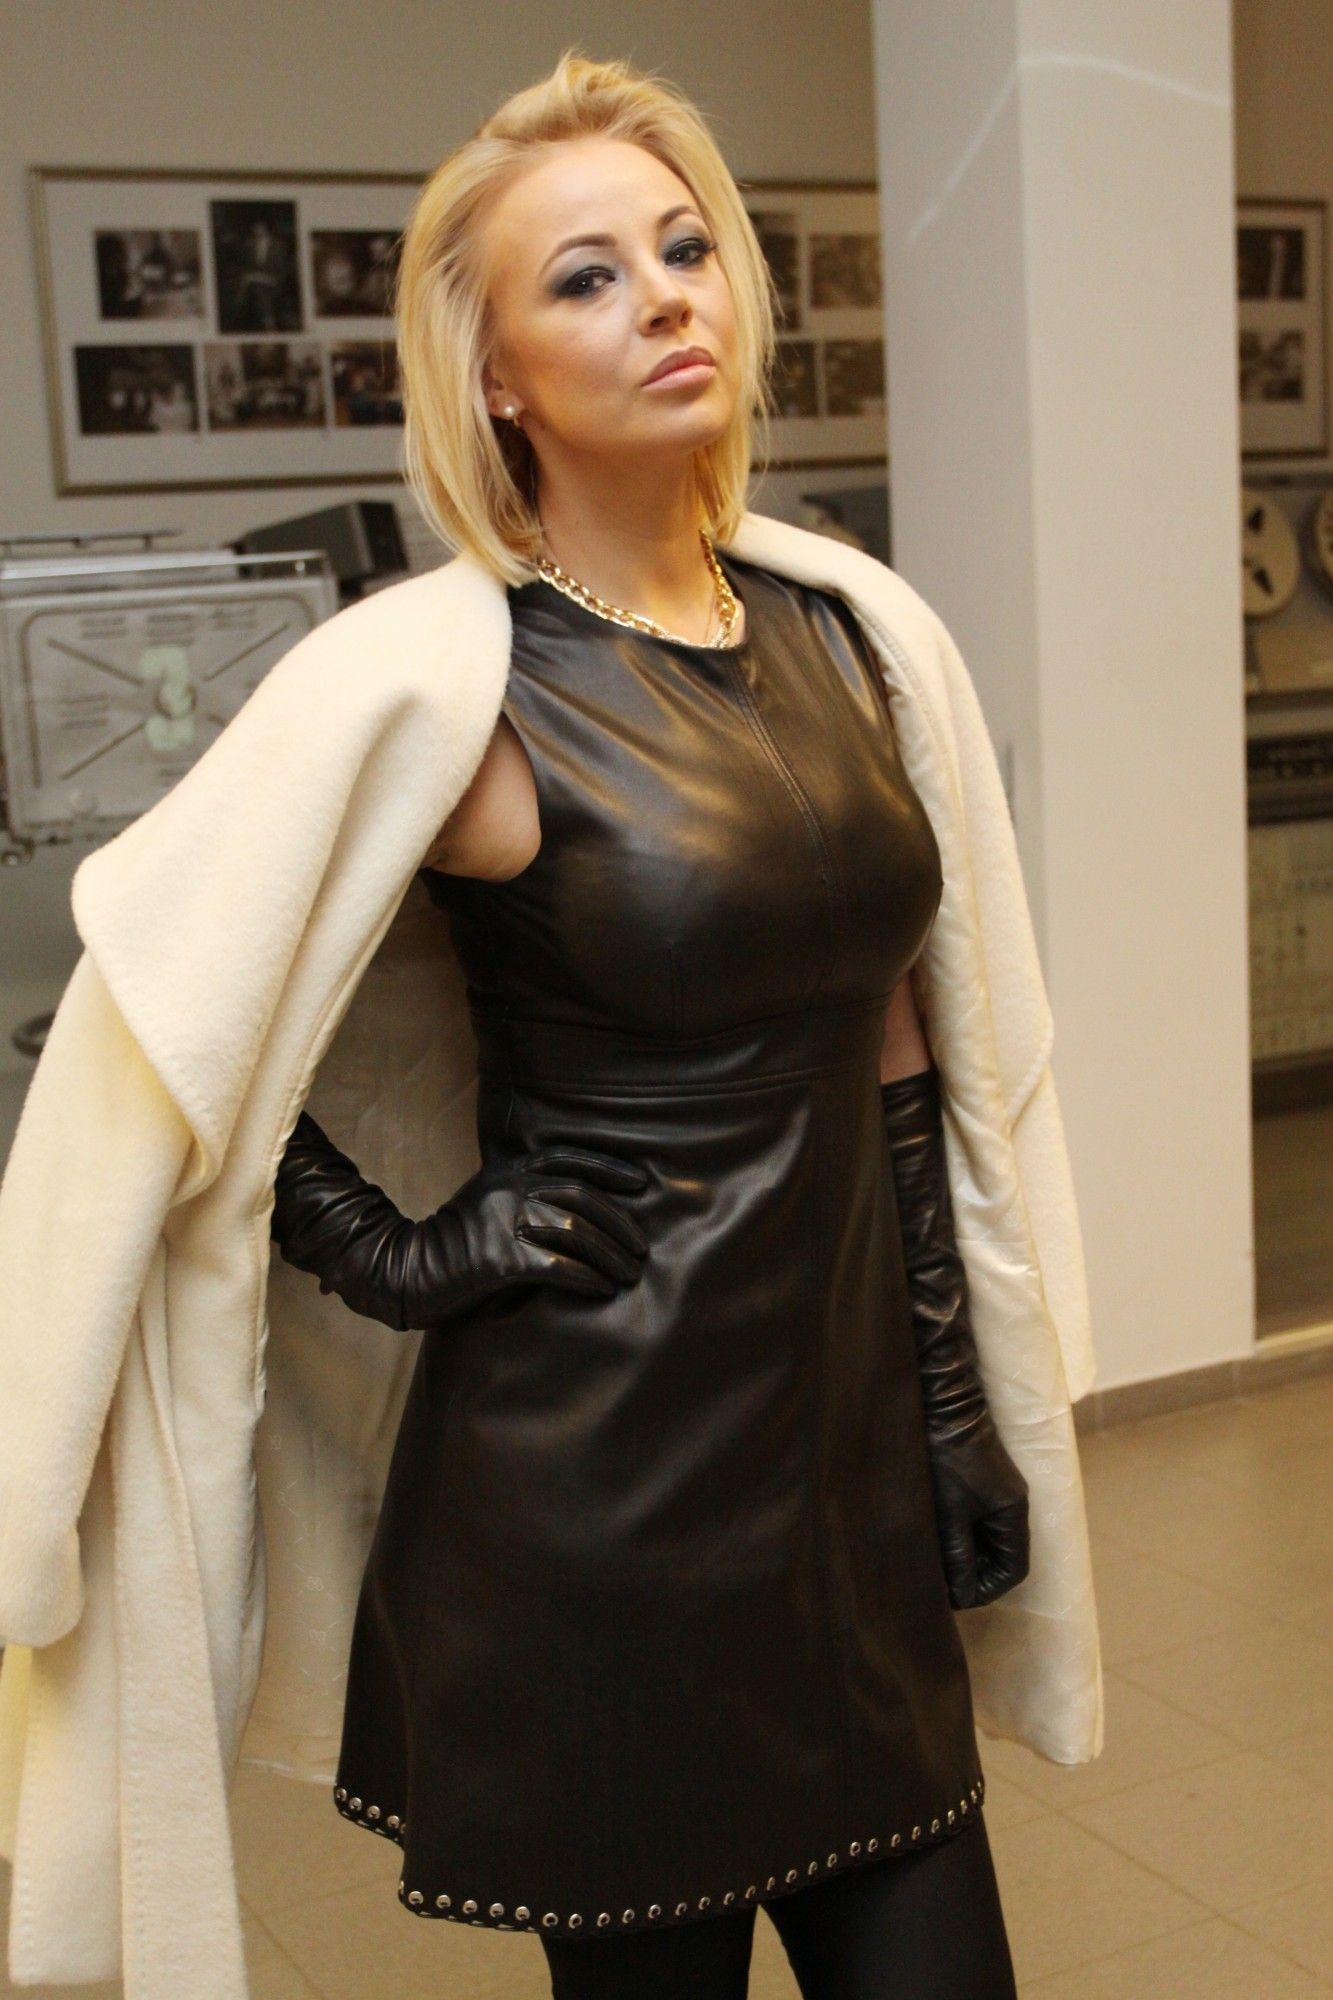 Leather Dress And Gloves  Leather Dresses, Fashion, Dress -3935